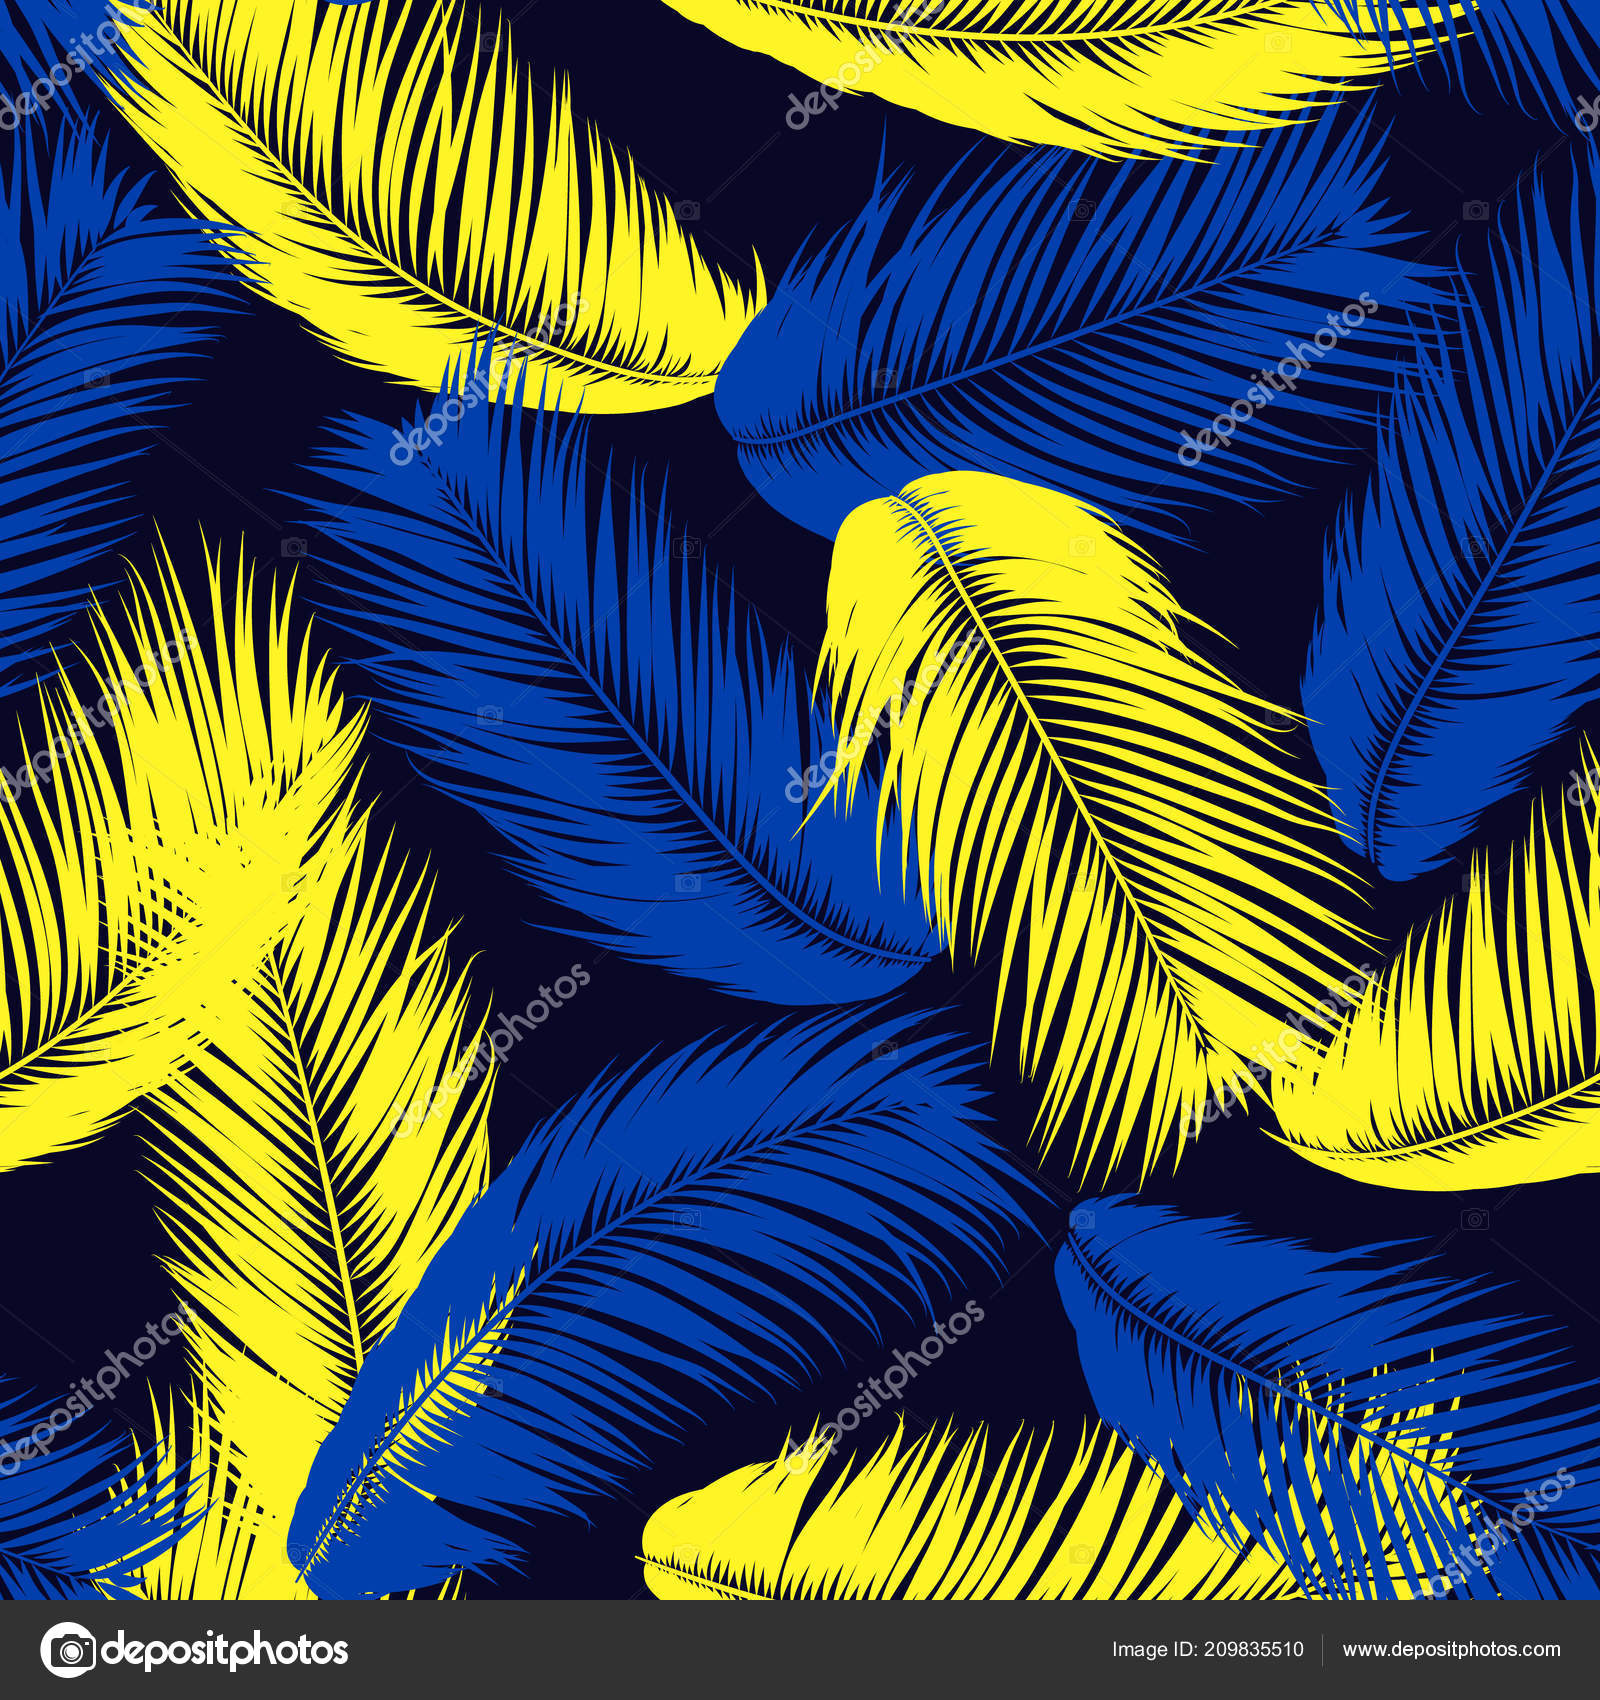 Abstract Exotic Wallpaper With Palm Leaves Pink Feathers For Design Cloth Fabric Textile EPS10 Vector By Ingara